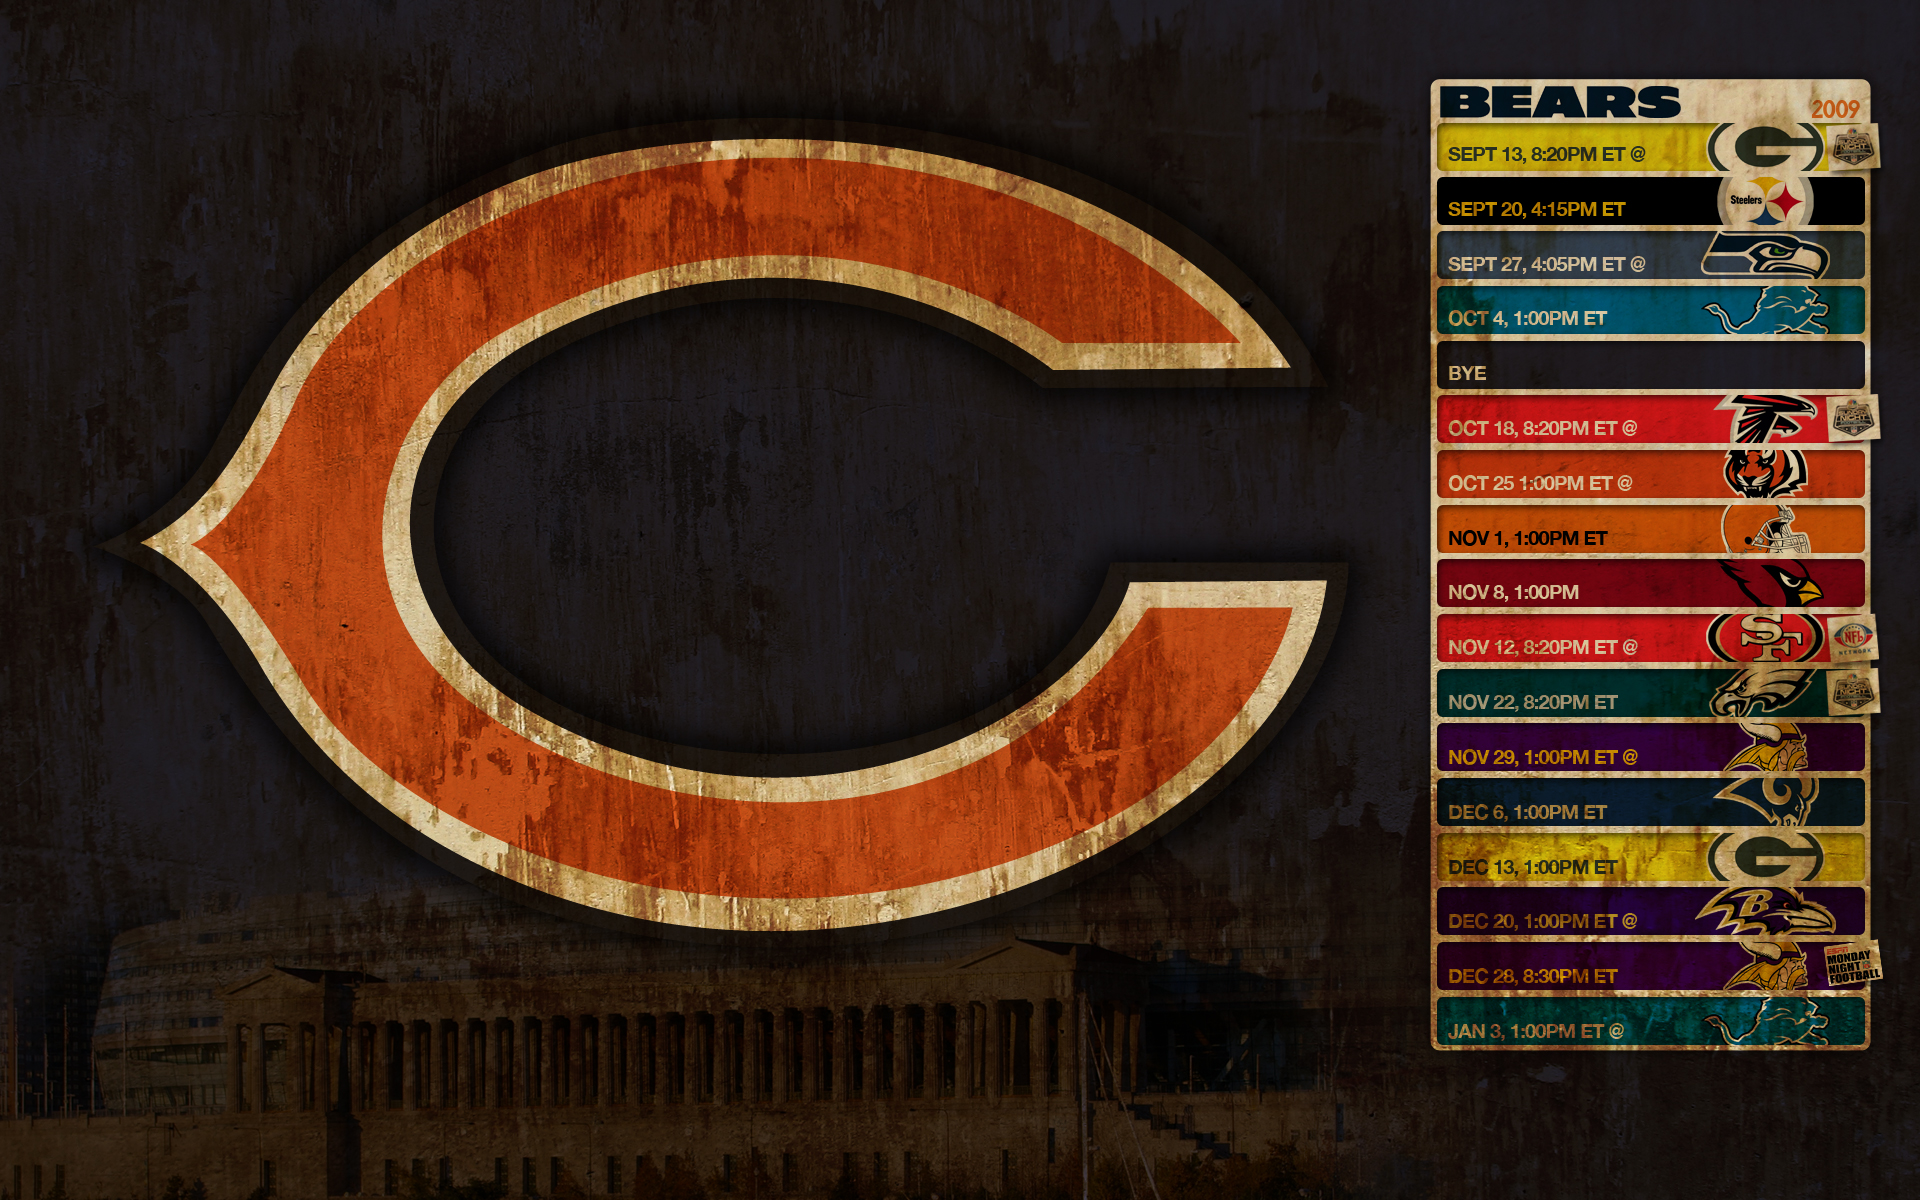 The best Chicago Bears wallpaper ever Chicago Bears wallpapers 1920x1200